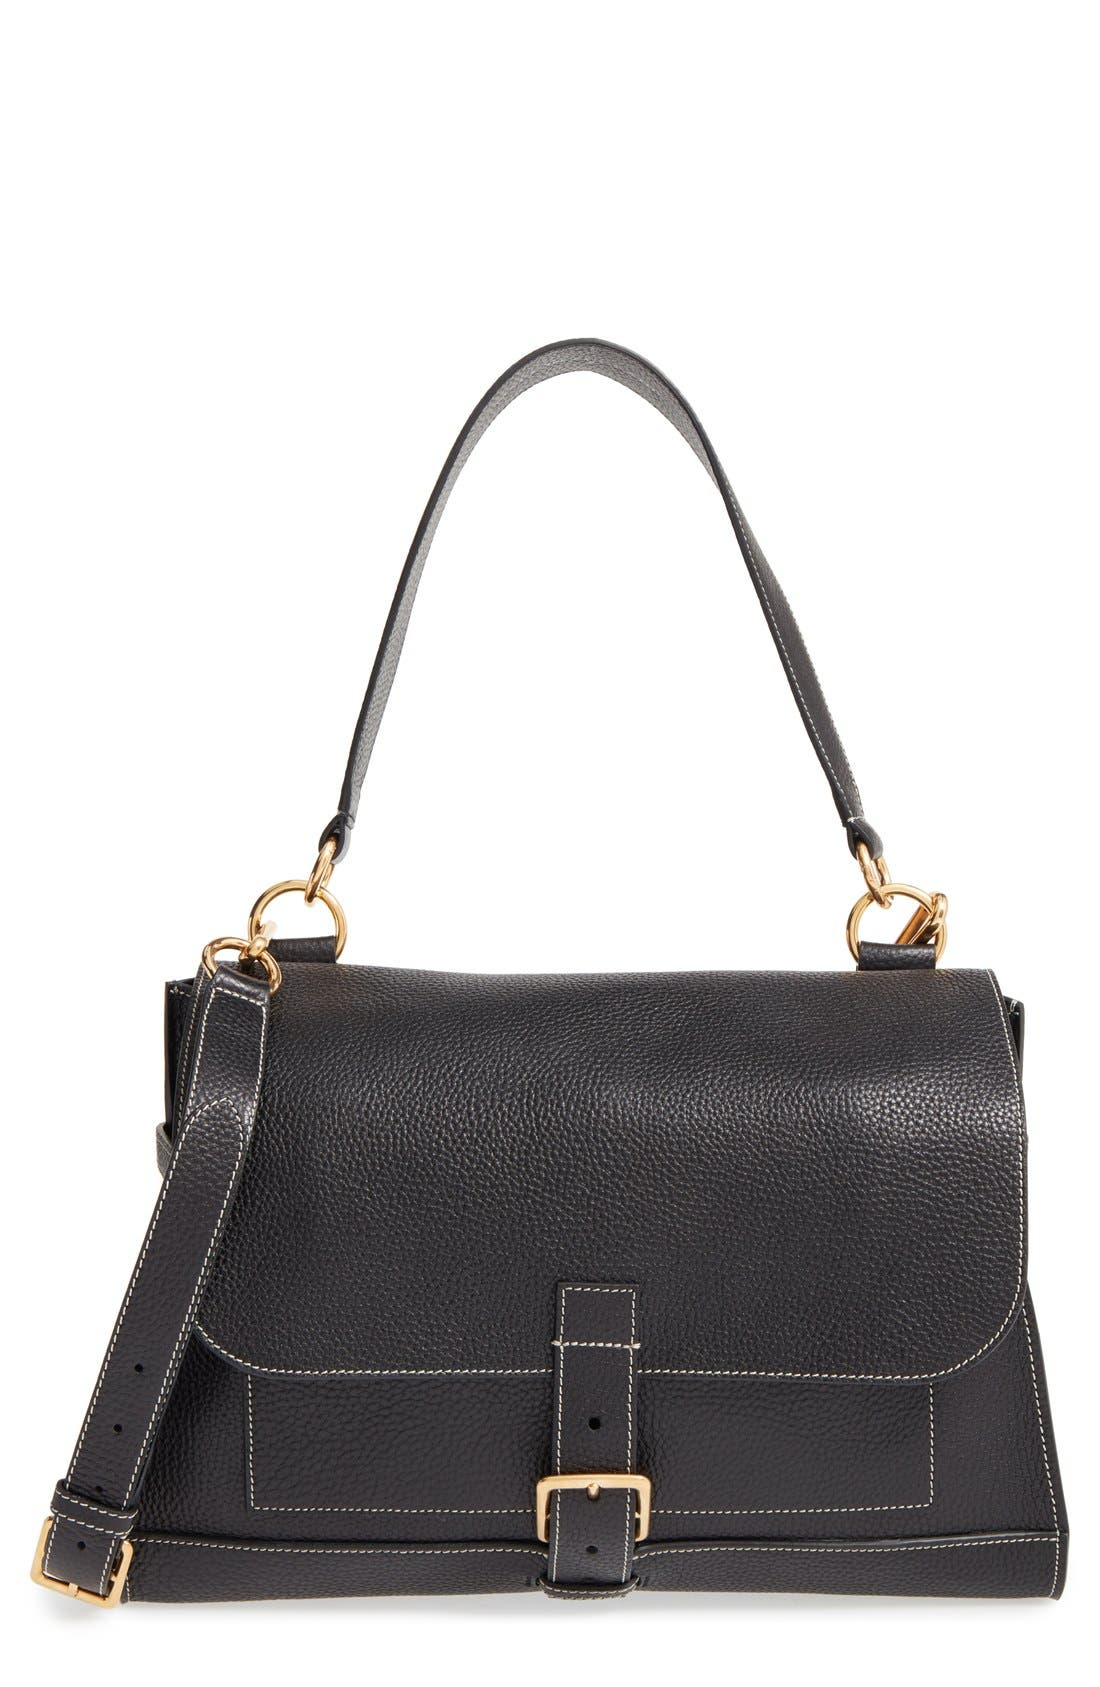 'Small Buckle' Leather Shoulder Bag,                             Main thumbnail 1, color,                             001